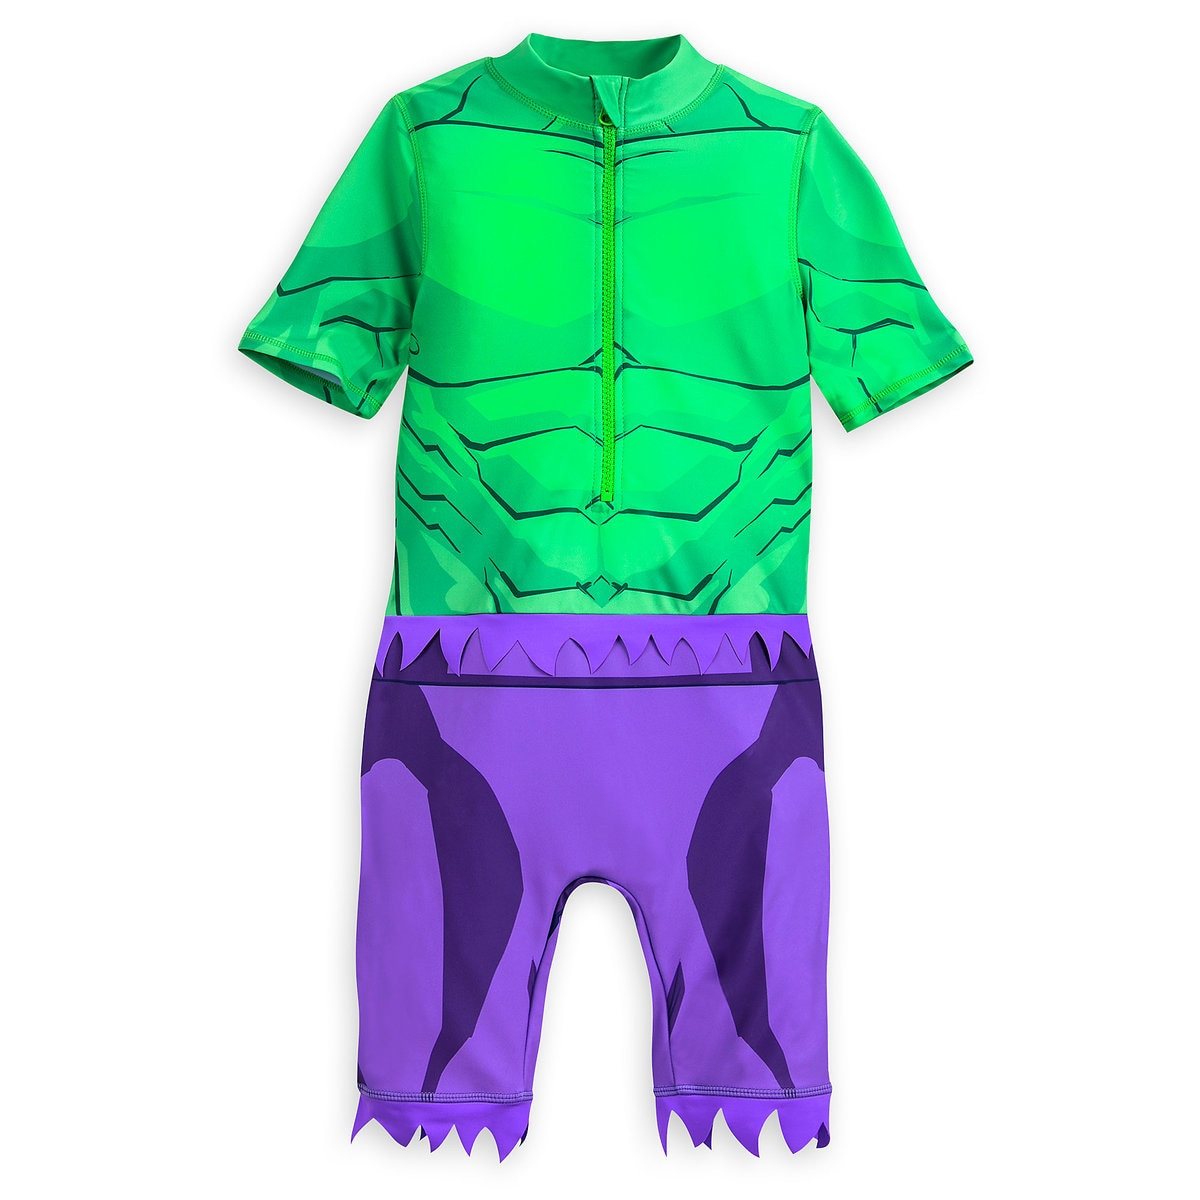 f8ac577d5a Product Image of Hulk Swim Body Suit for Boys # 1